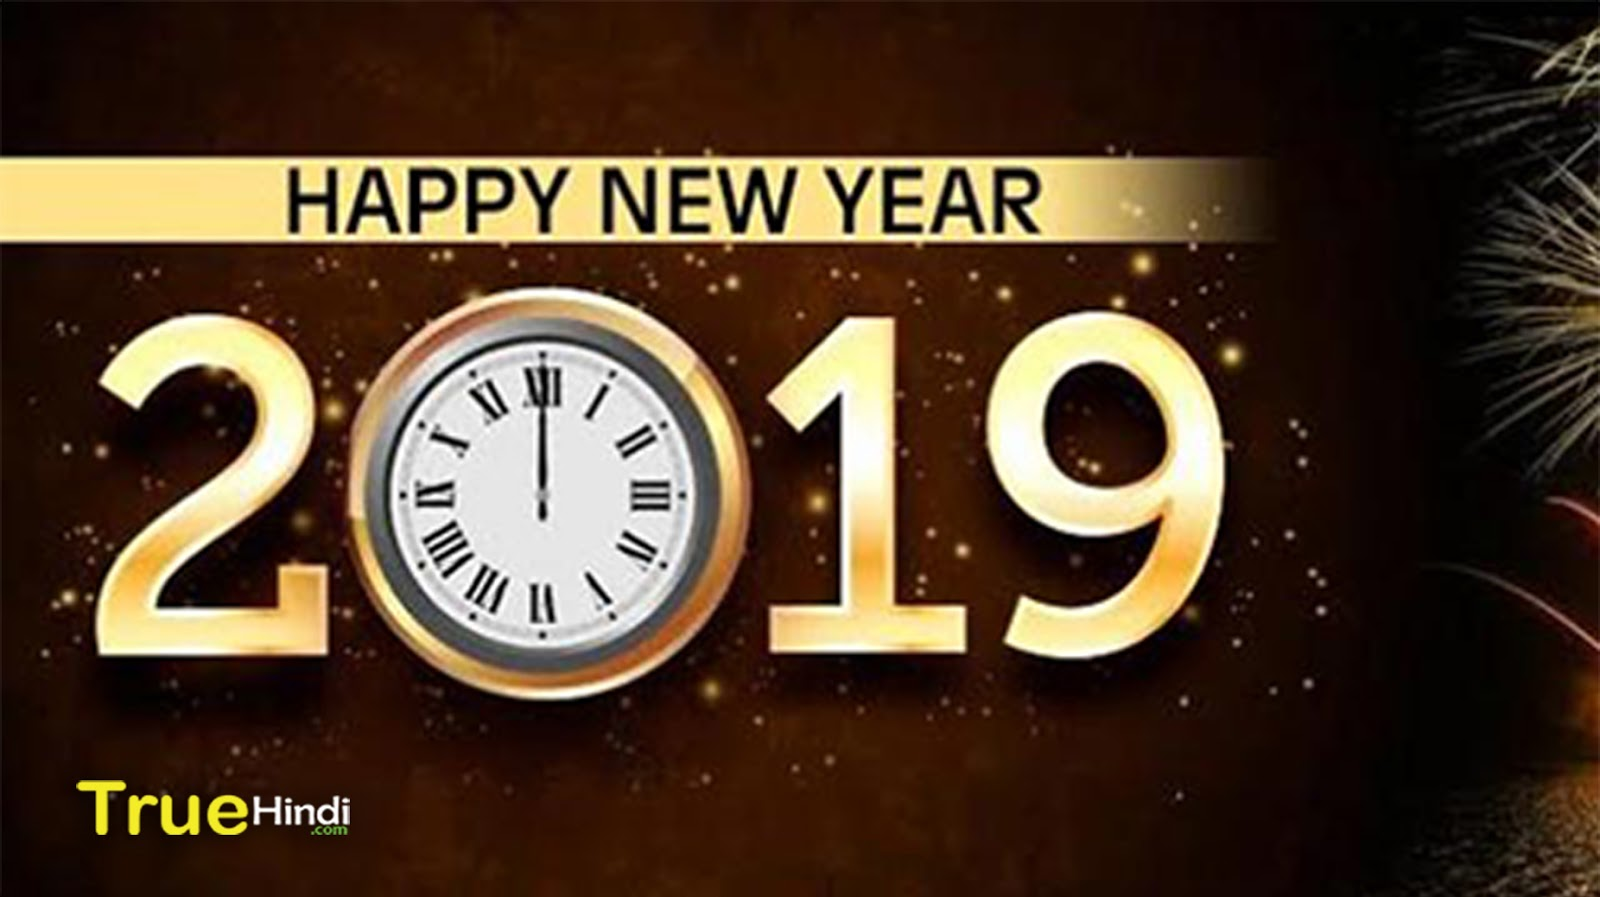 FREE] Happy New Year 2019 Hd Wallpapers Images Pictures